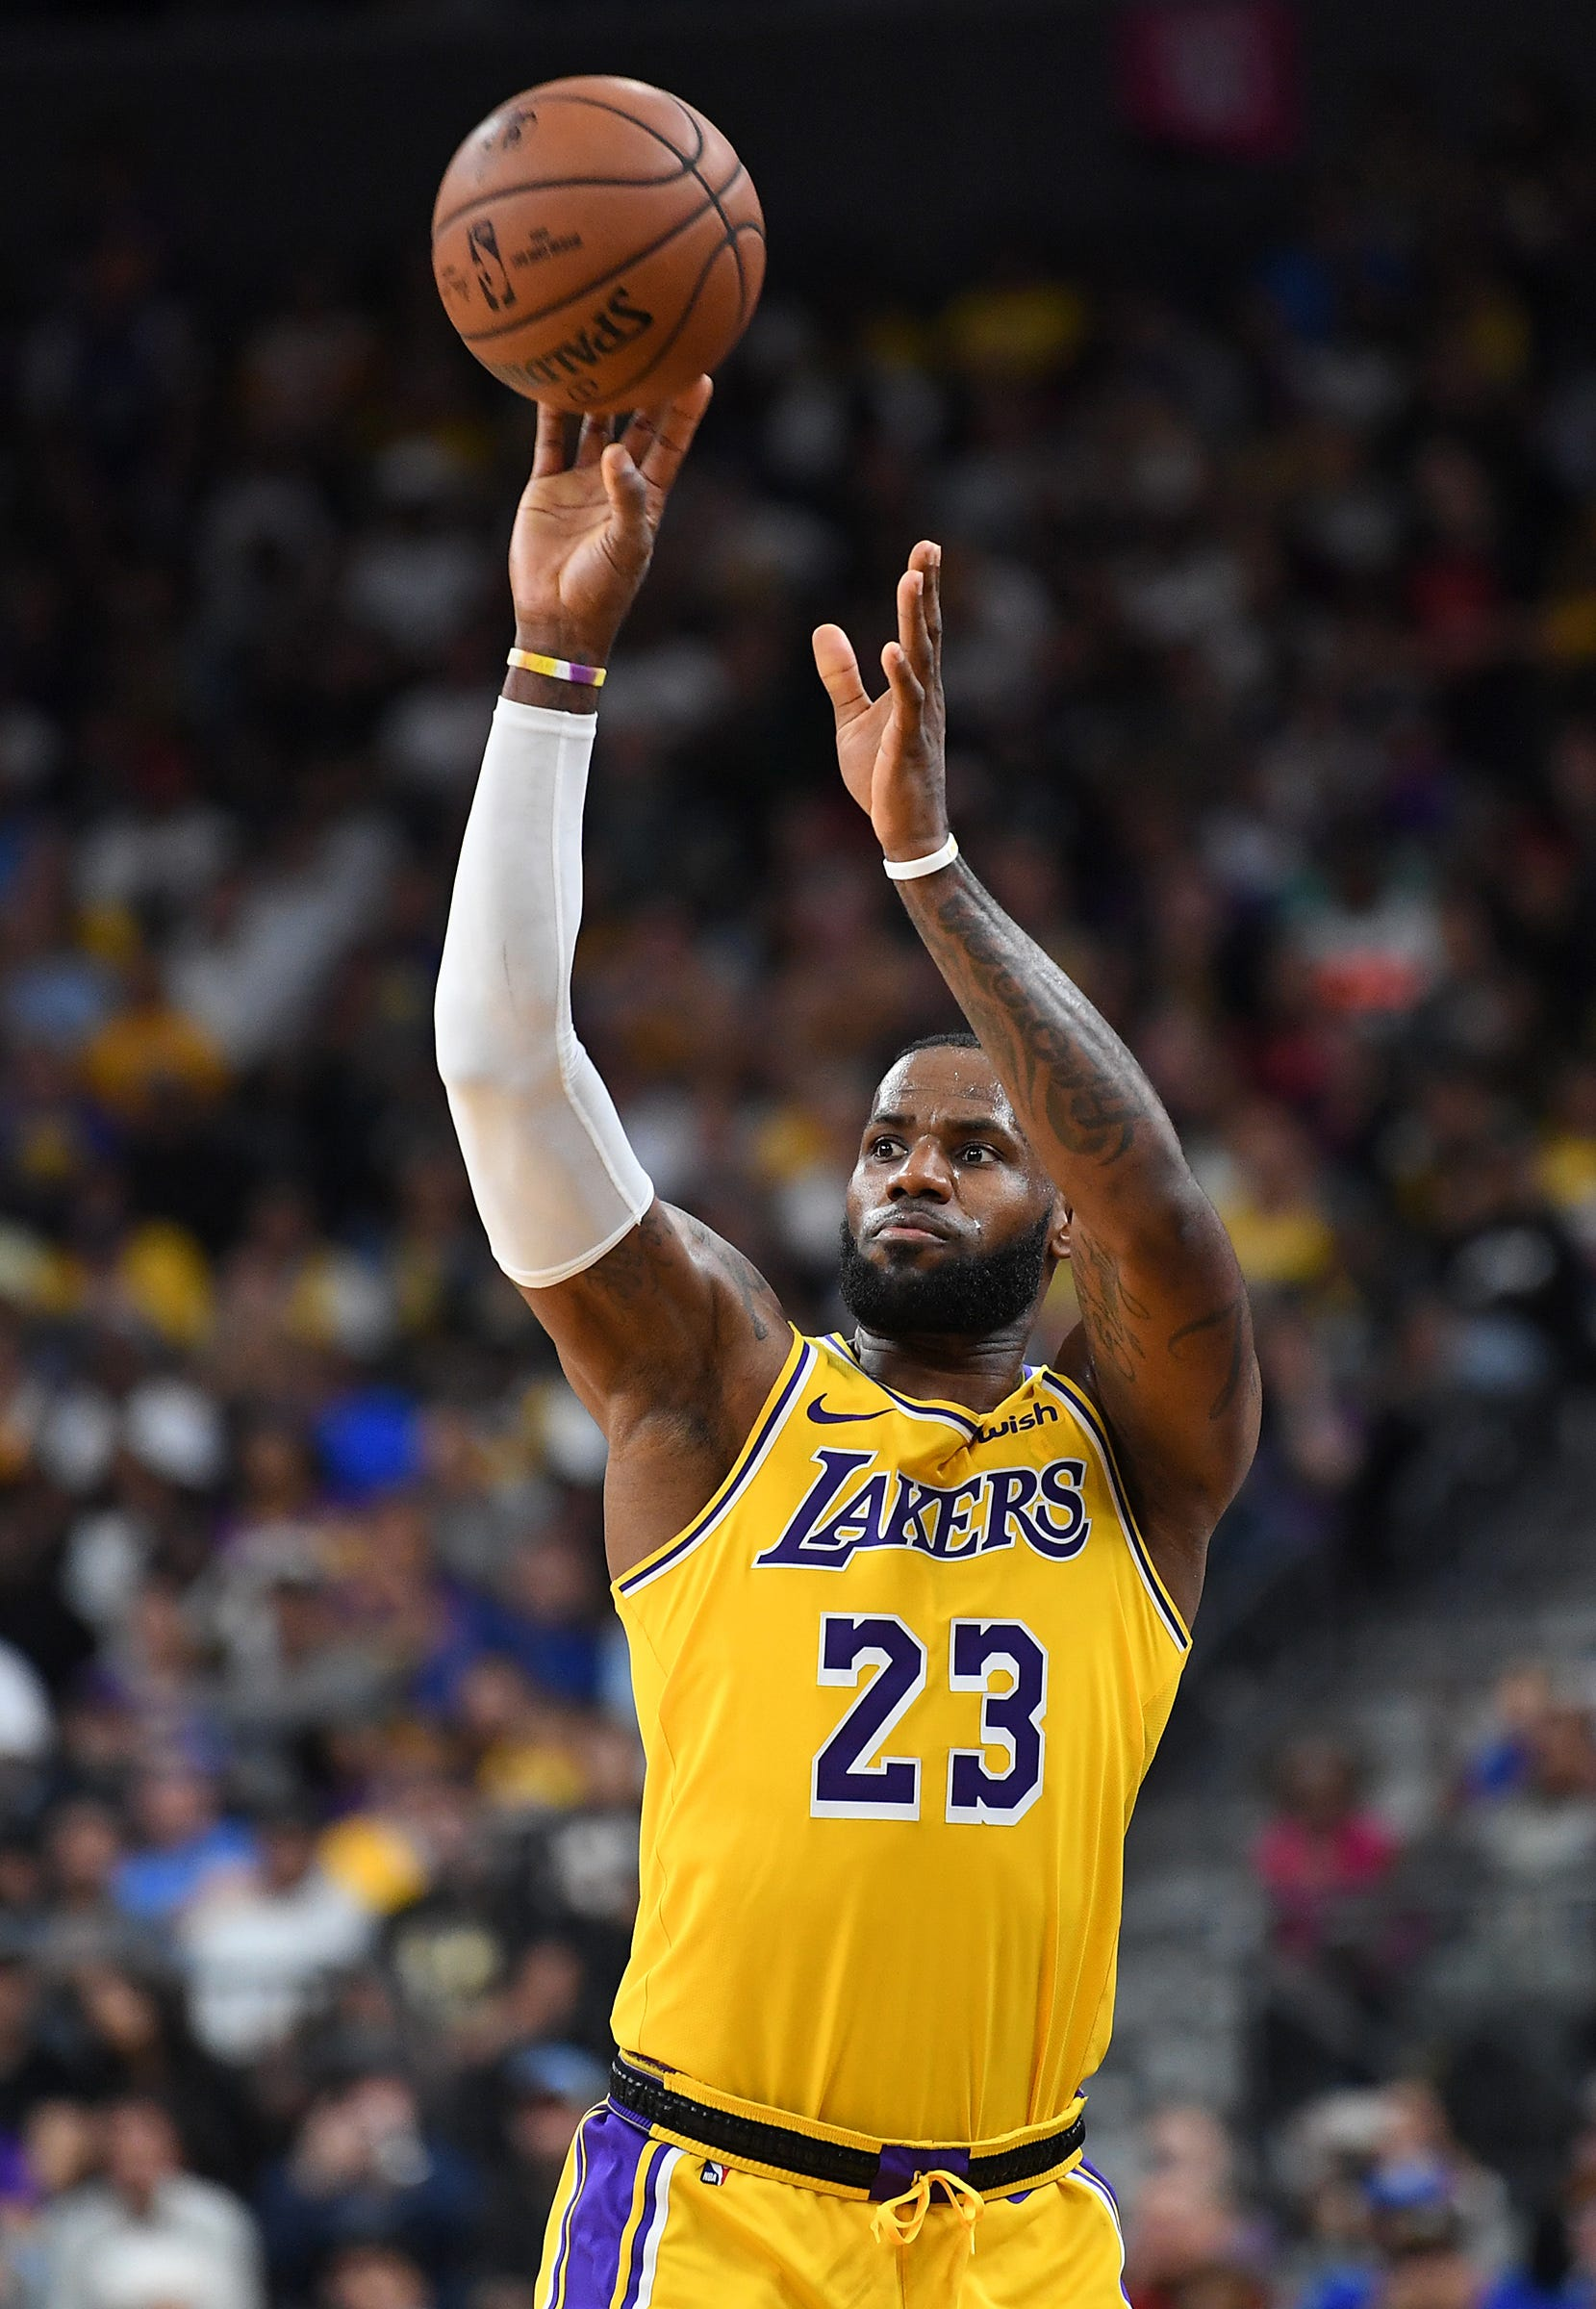 LeBron James hits three-pointer at halftime buzzer-beater in LA Lakers preseason game